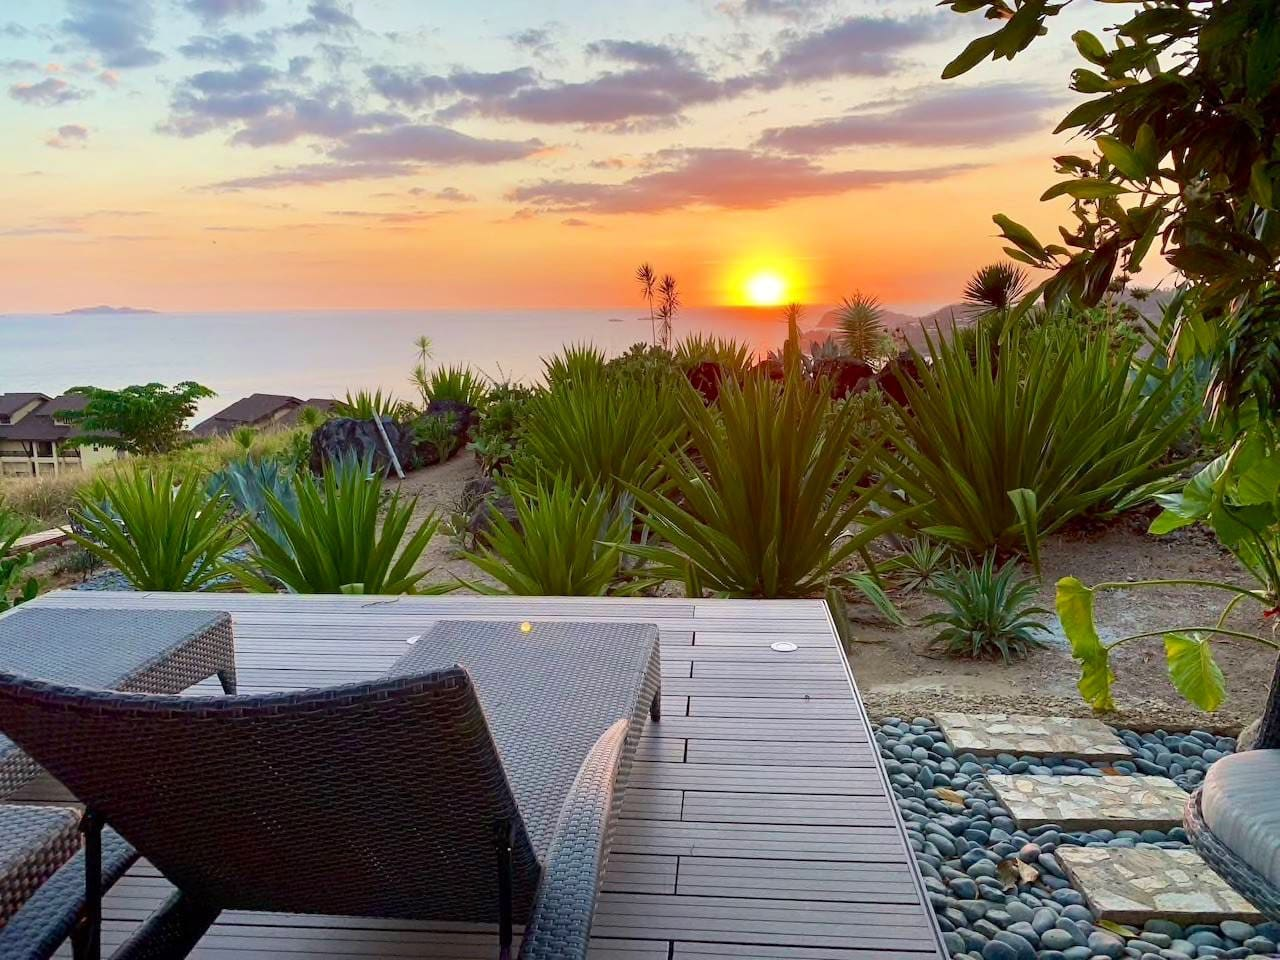 Watch the sunset with your loved ones in your own private oasis..